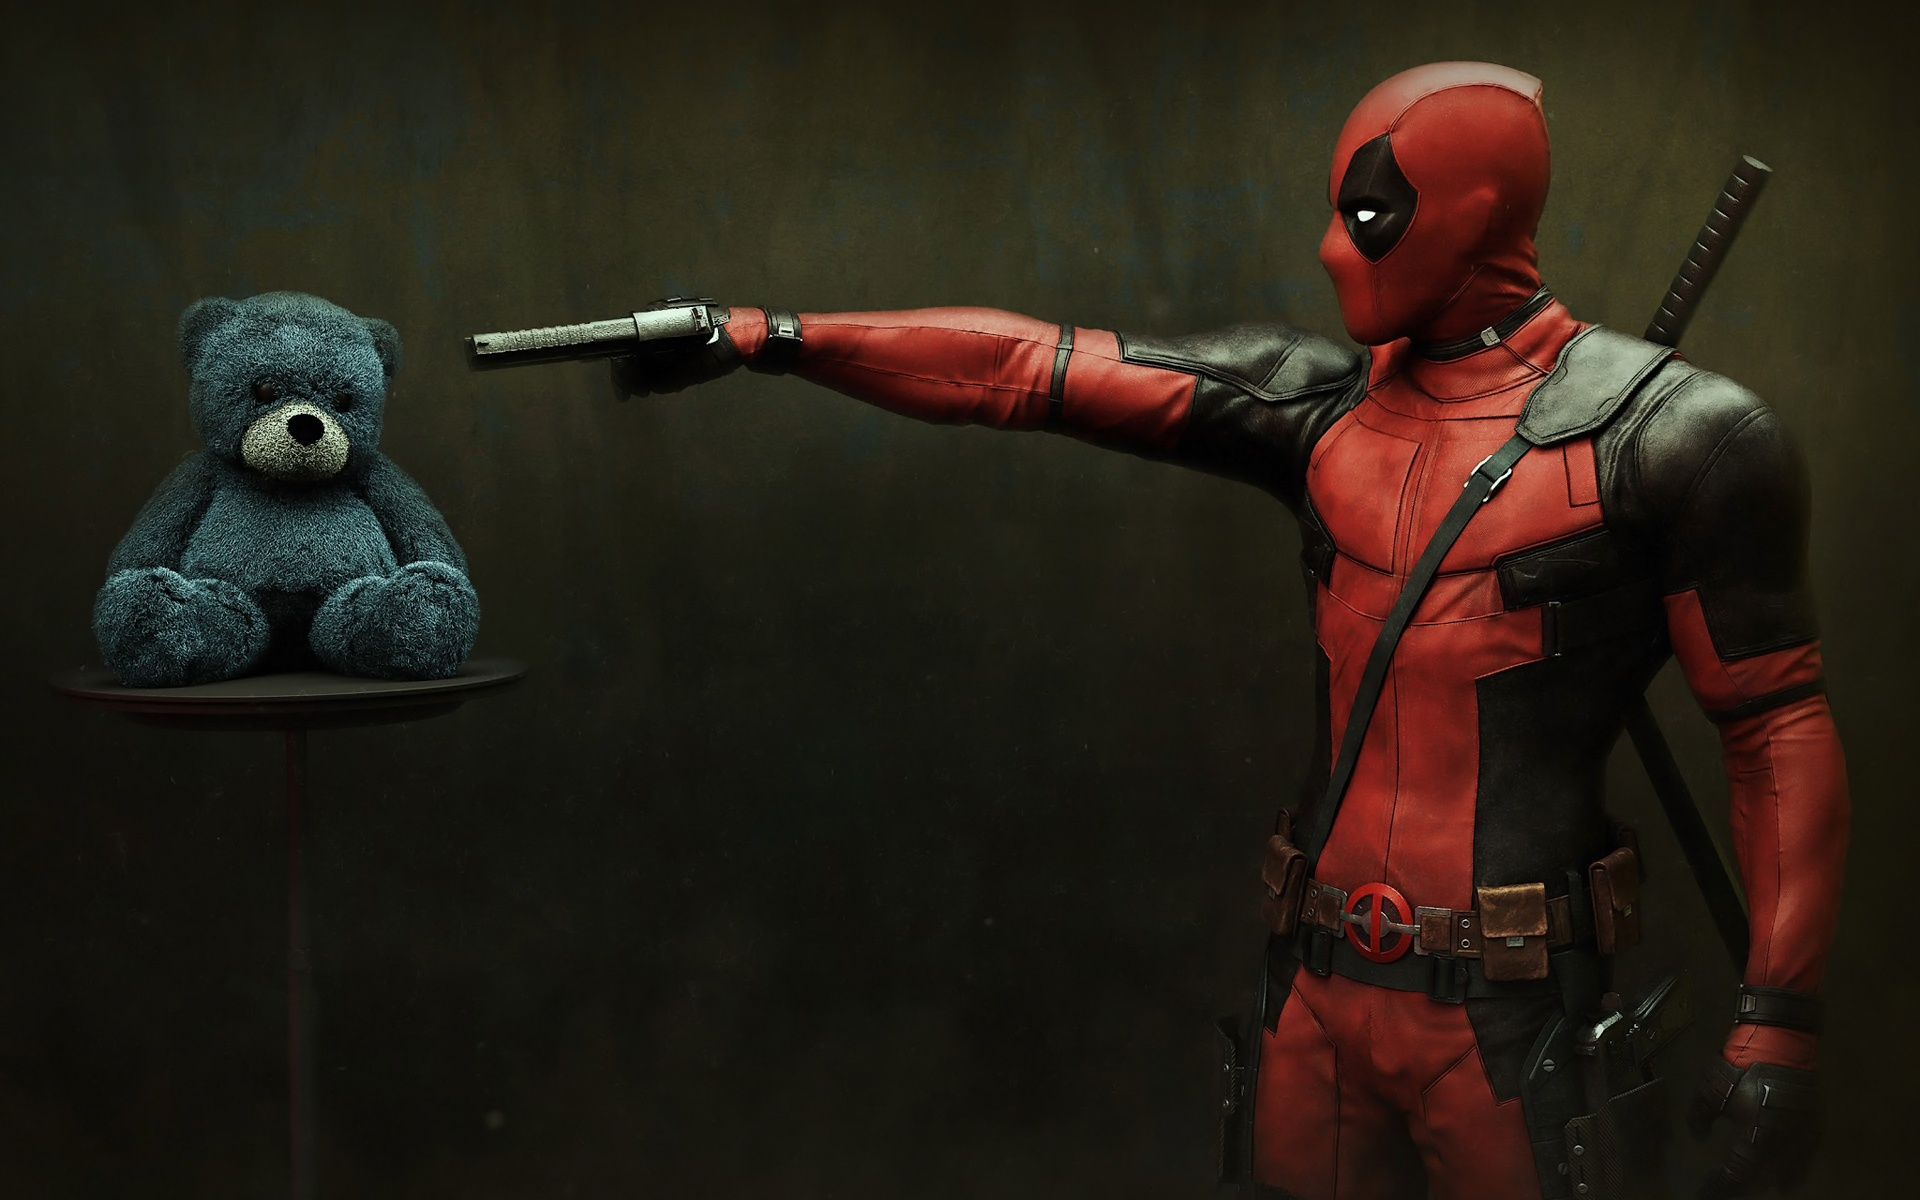 deadpool-wallpaper-teddy-bear-gun-violence